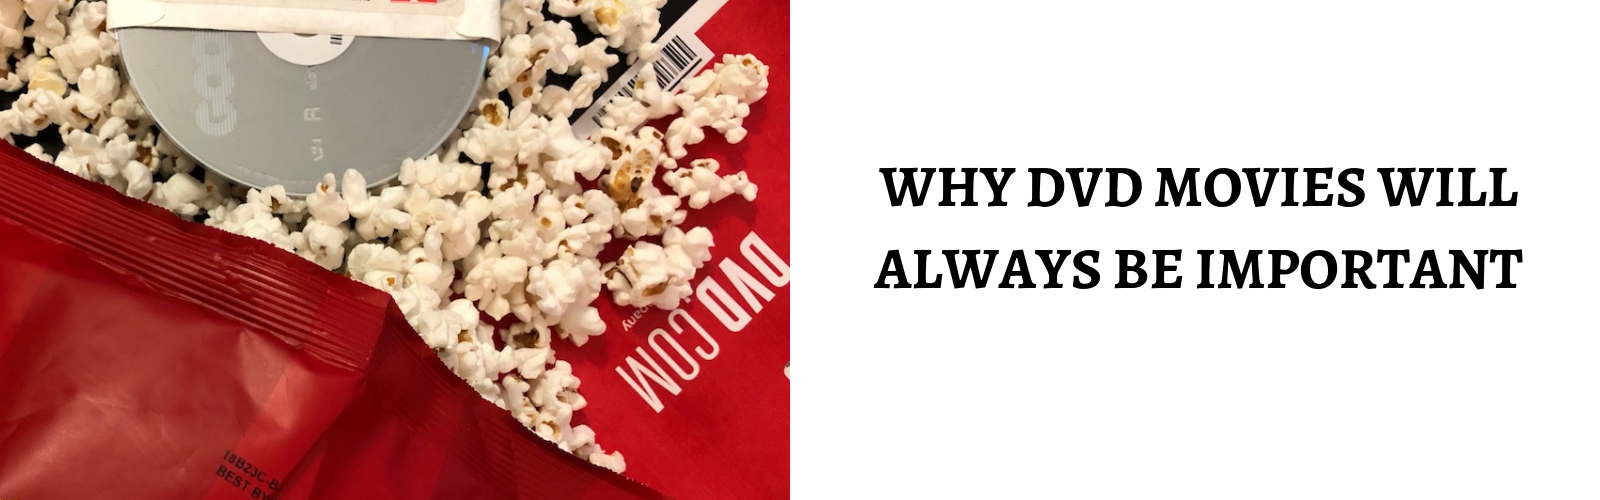 why dvd movies will always be important